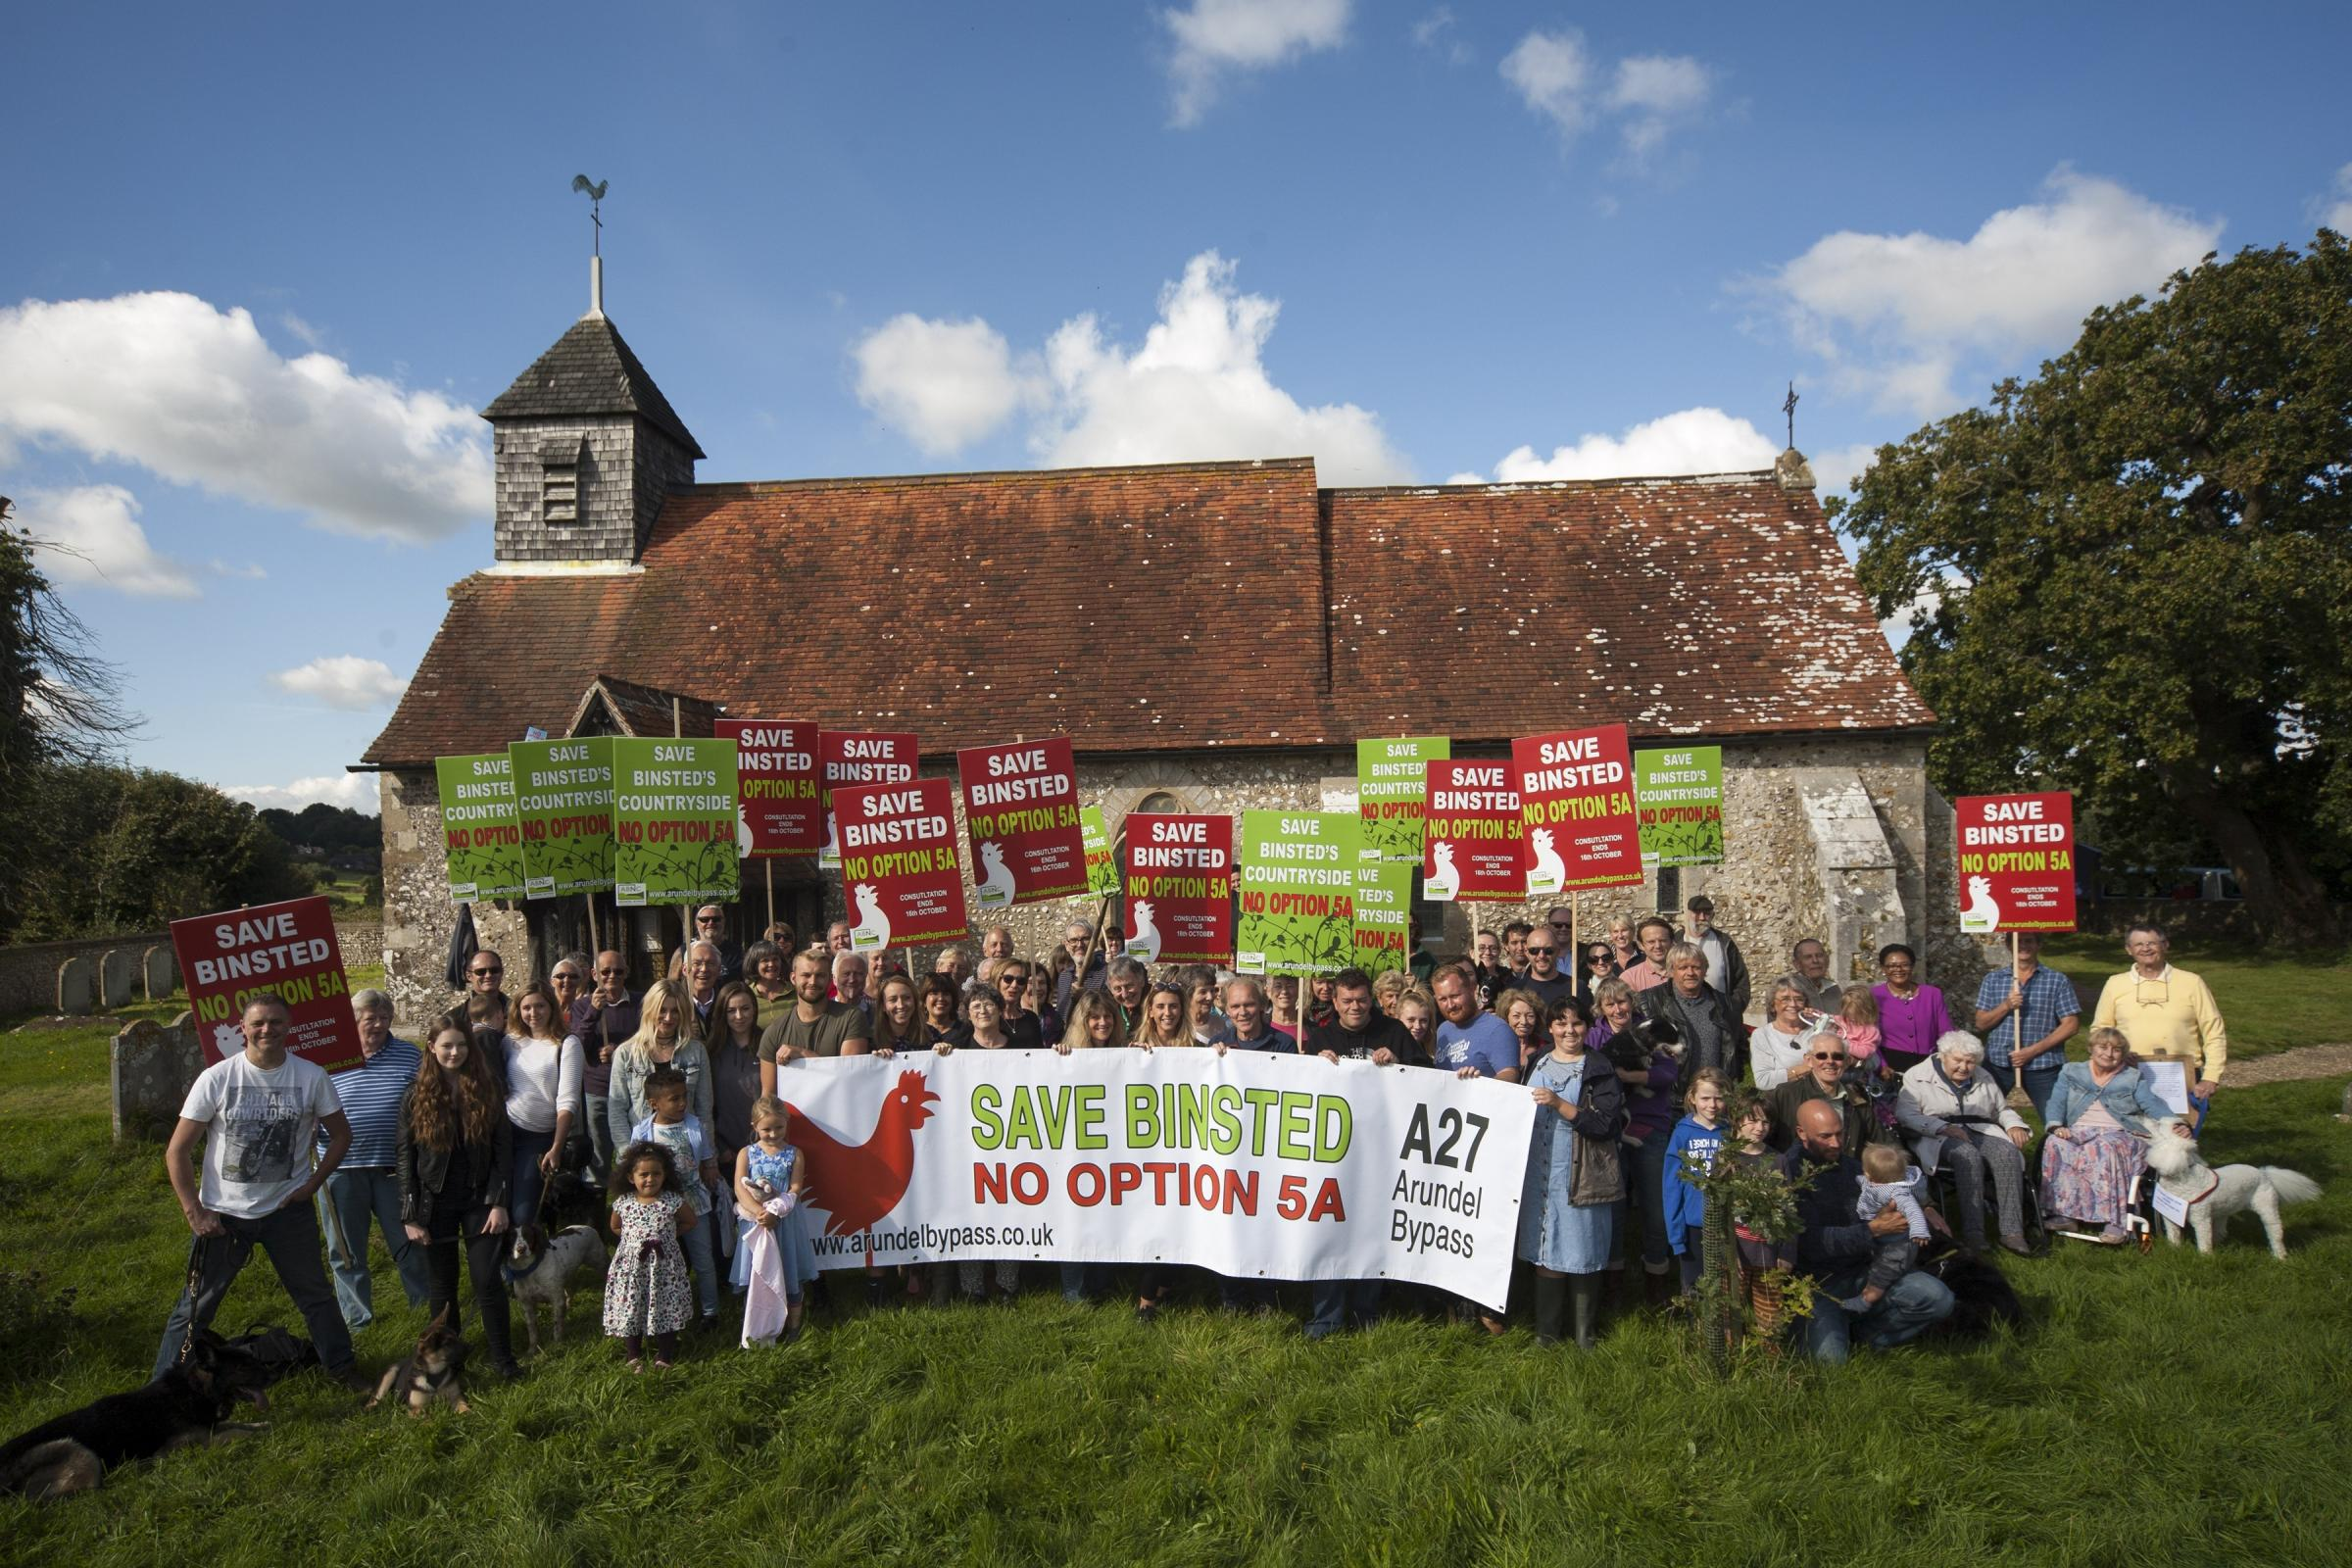 Campaigners protest against the proposal